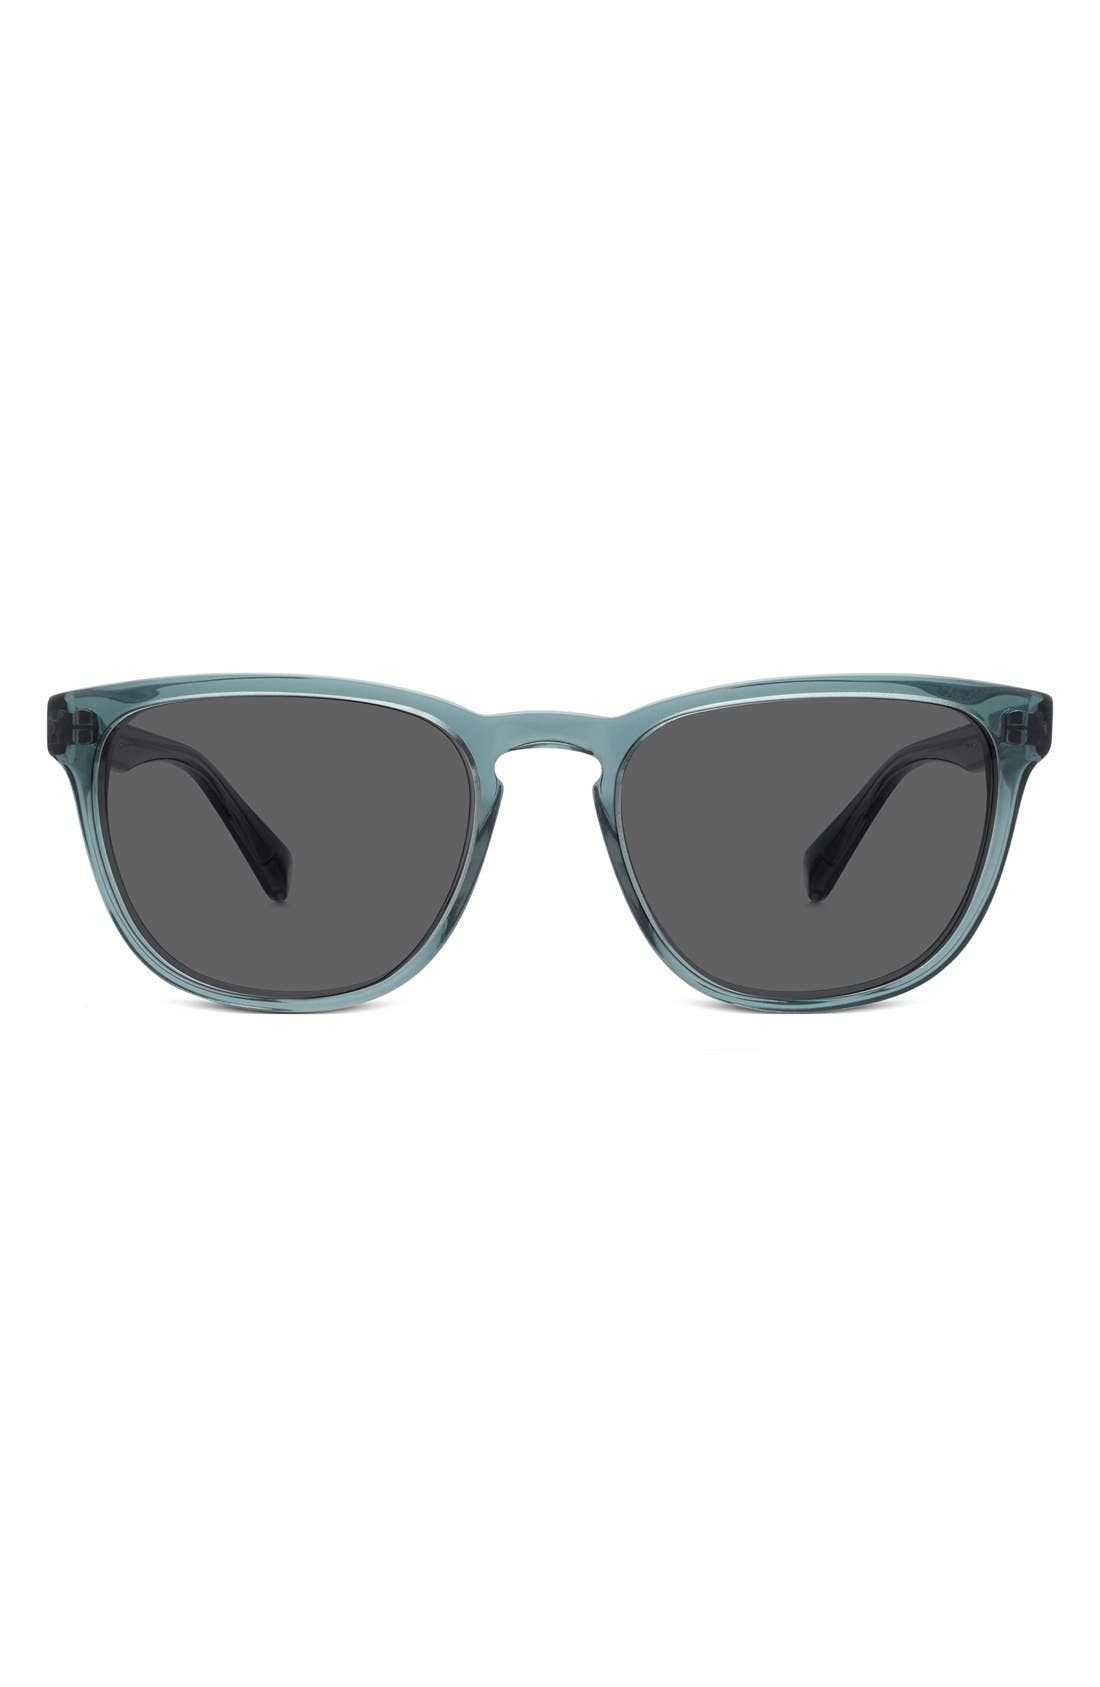 Alternate Image 1 Selected - Warby Parker 'Jennings' 53mm Polarized Sunglasses